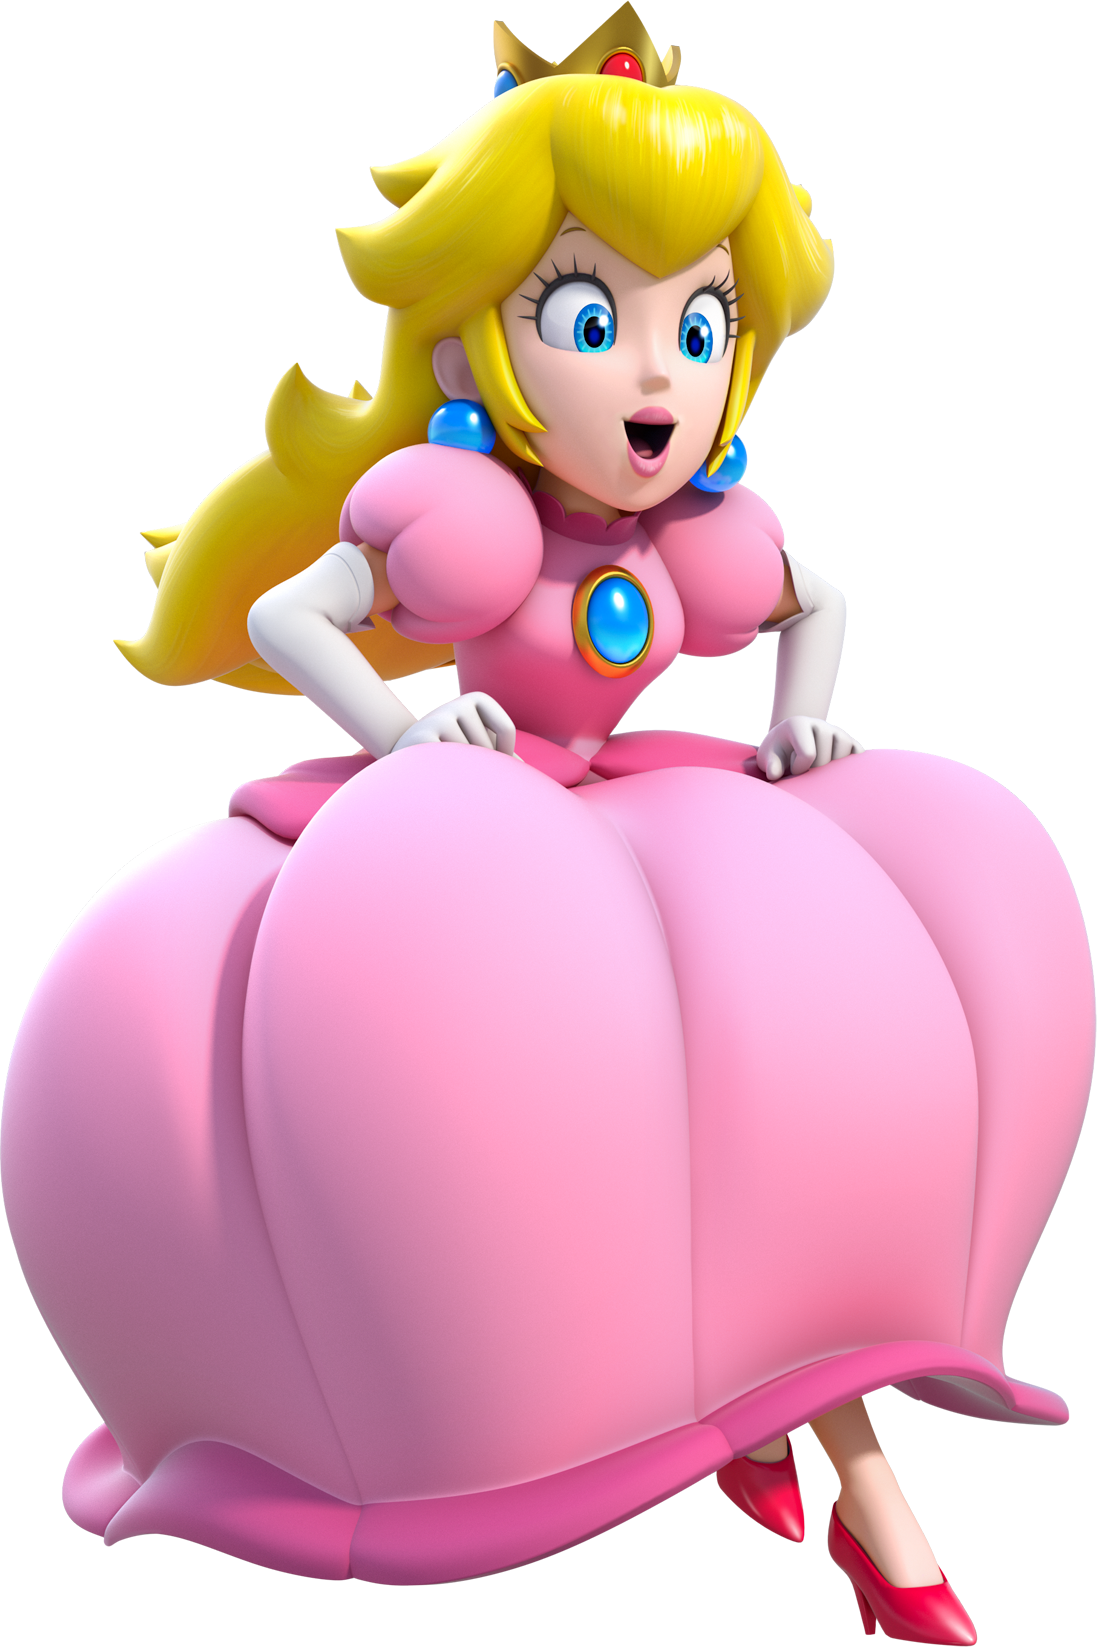 Princess_Peach_Artwork_(alt)_-_Super_Mar